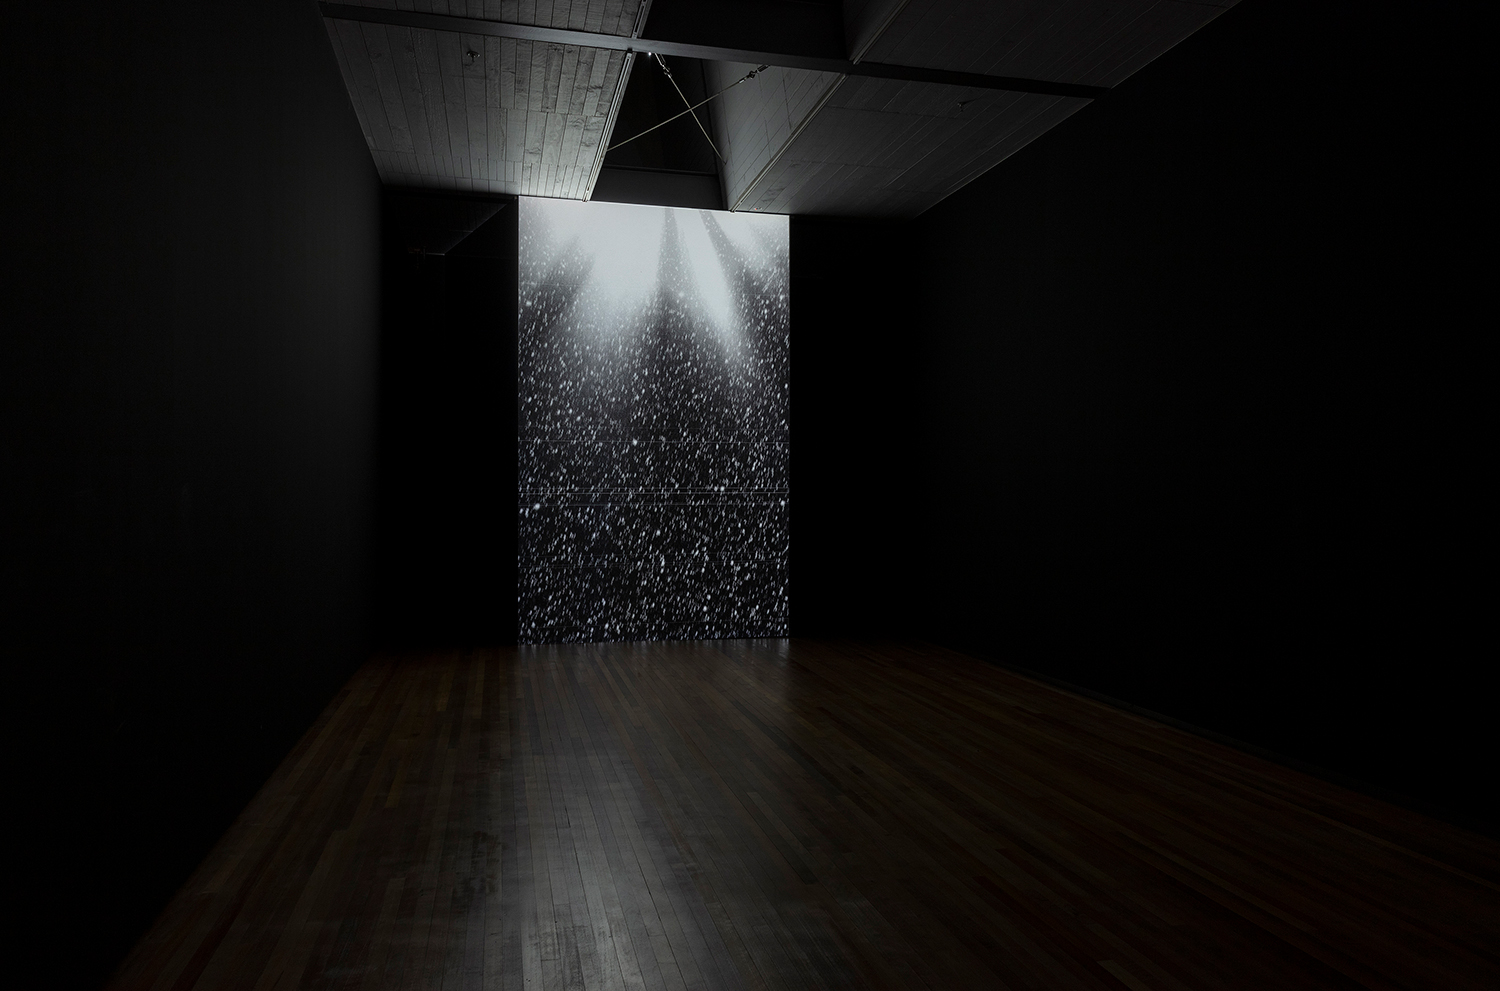 Semiconductor, Black Rain, 2008, The Technological Sublime. (Image, courtesy City Gallery)